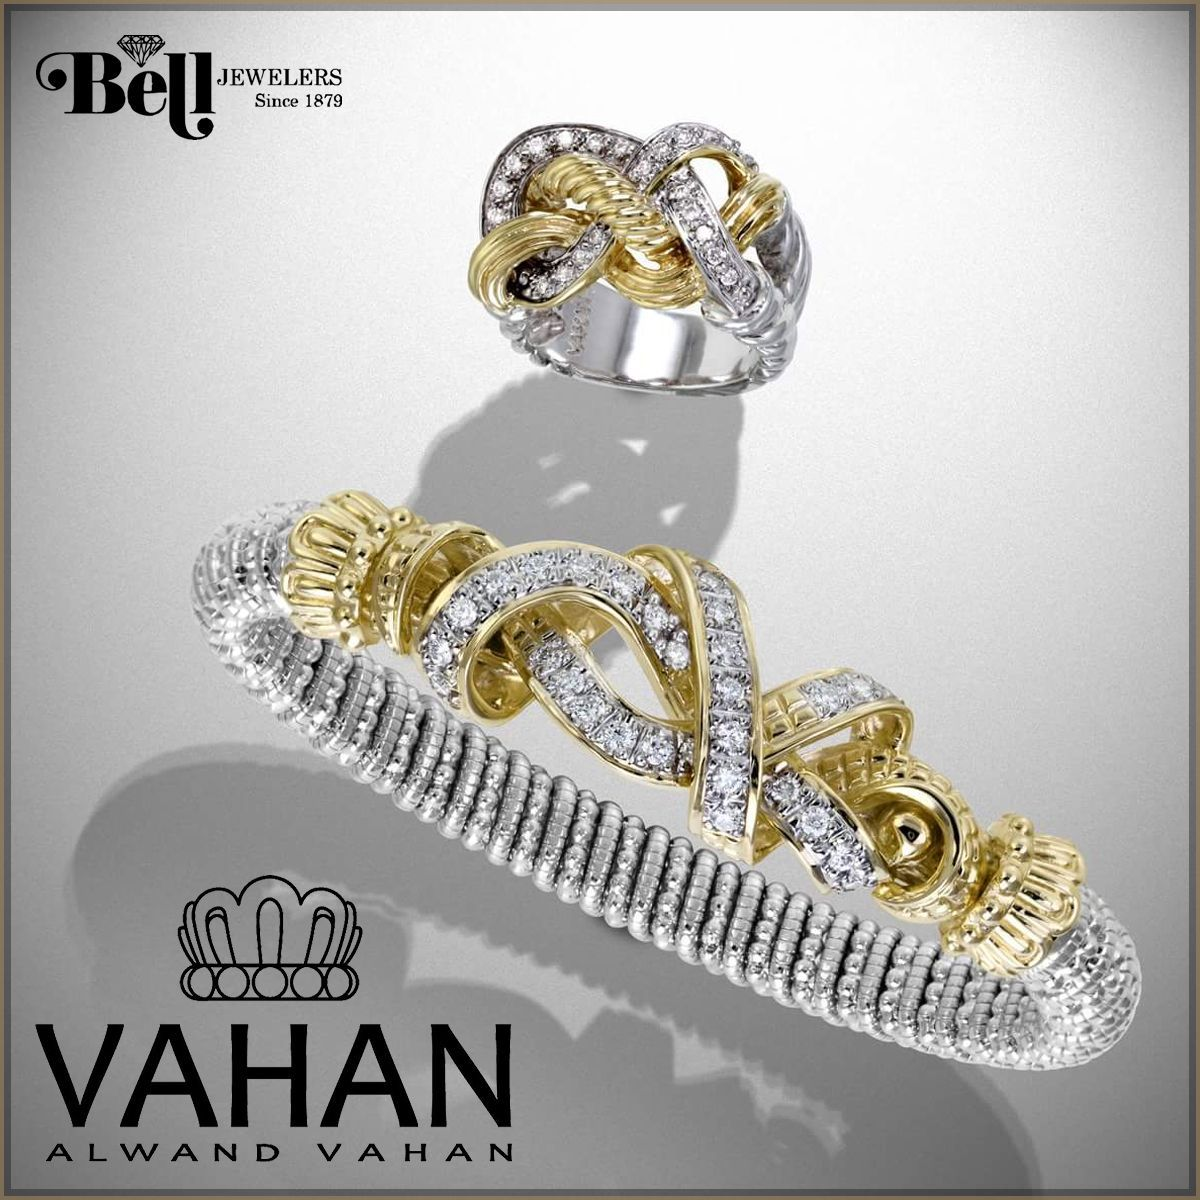 Add some pizzazz with the sparkle of Vahan! Pricing